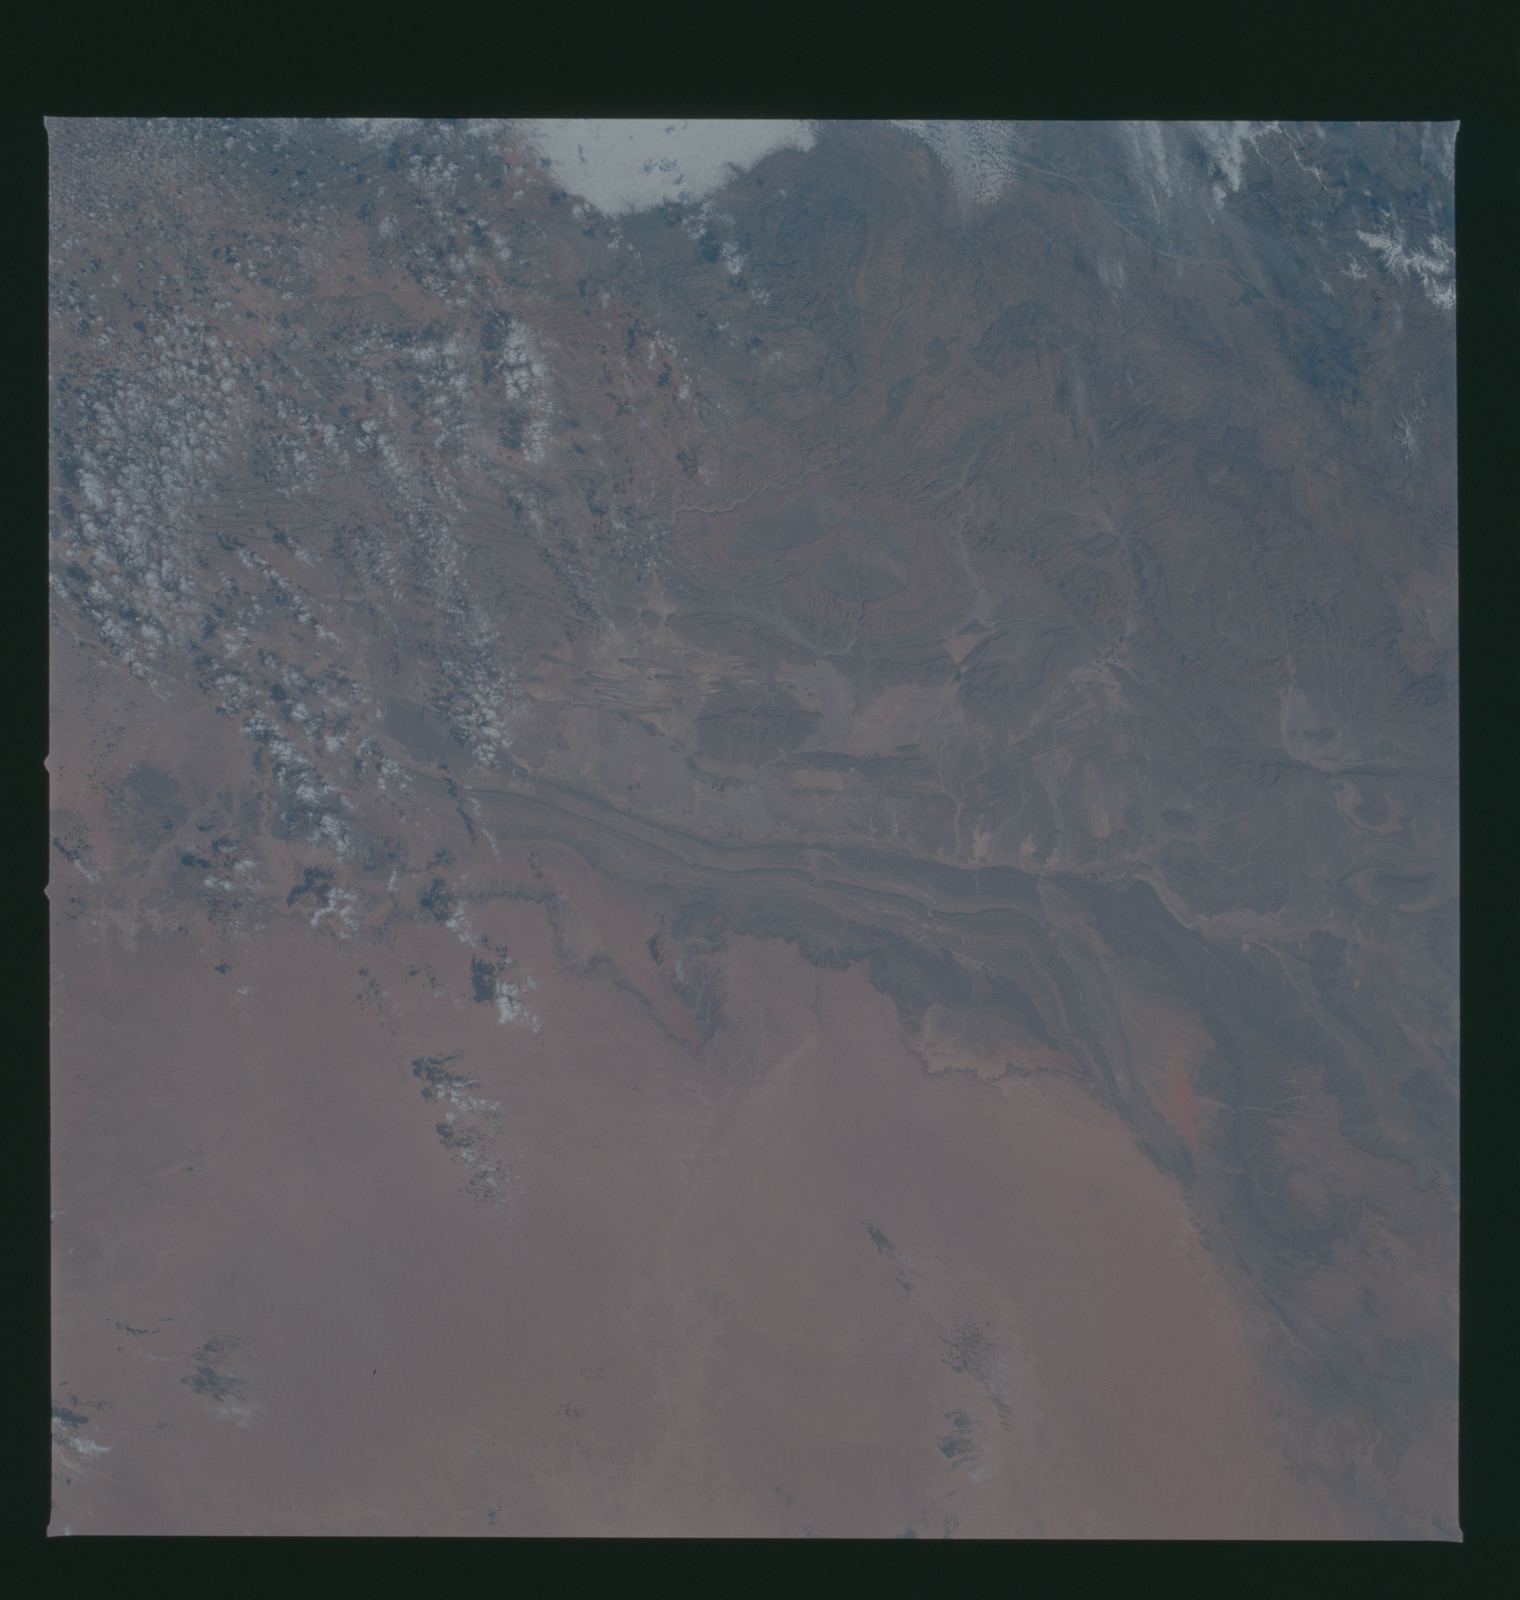 S37-94-089 - STS-037 - Earth observations taken from OV-104 during STS-37 mission